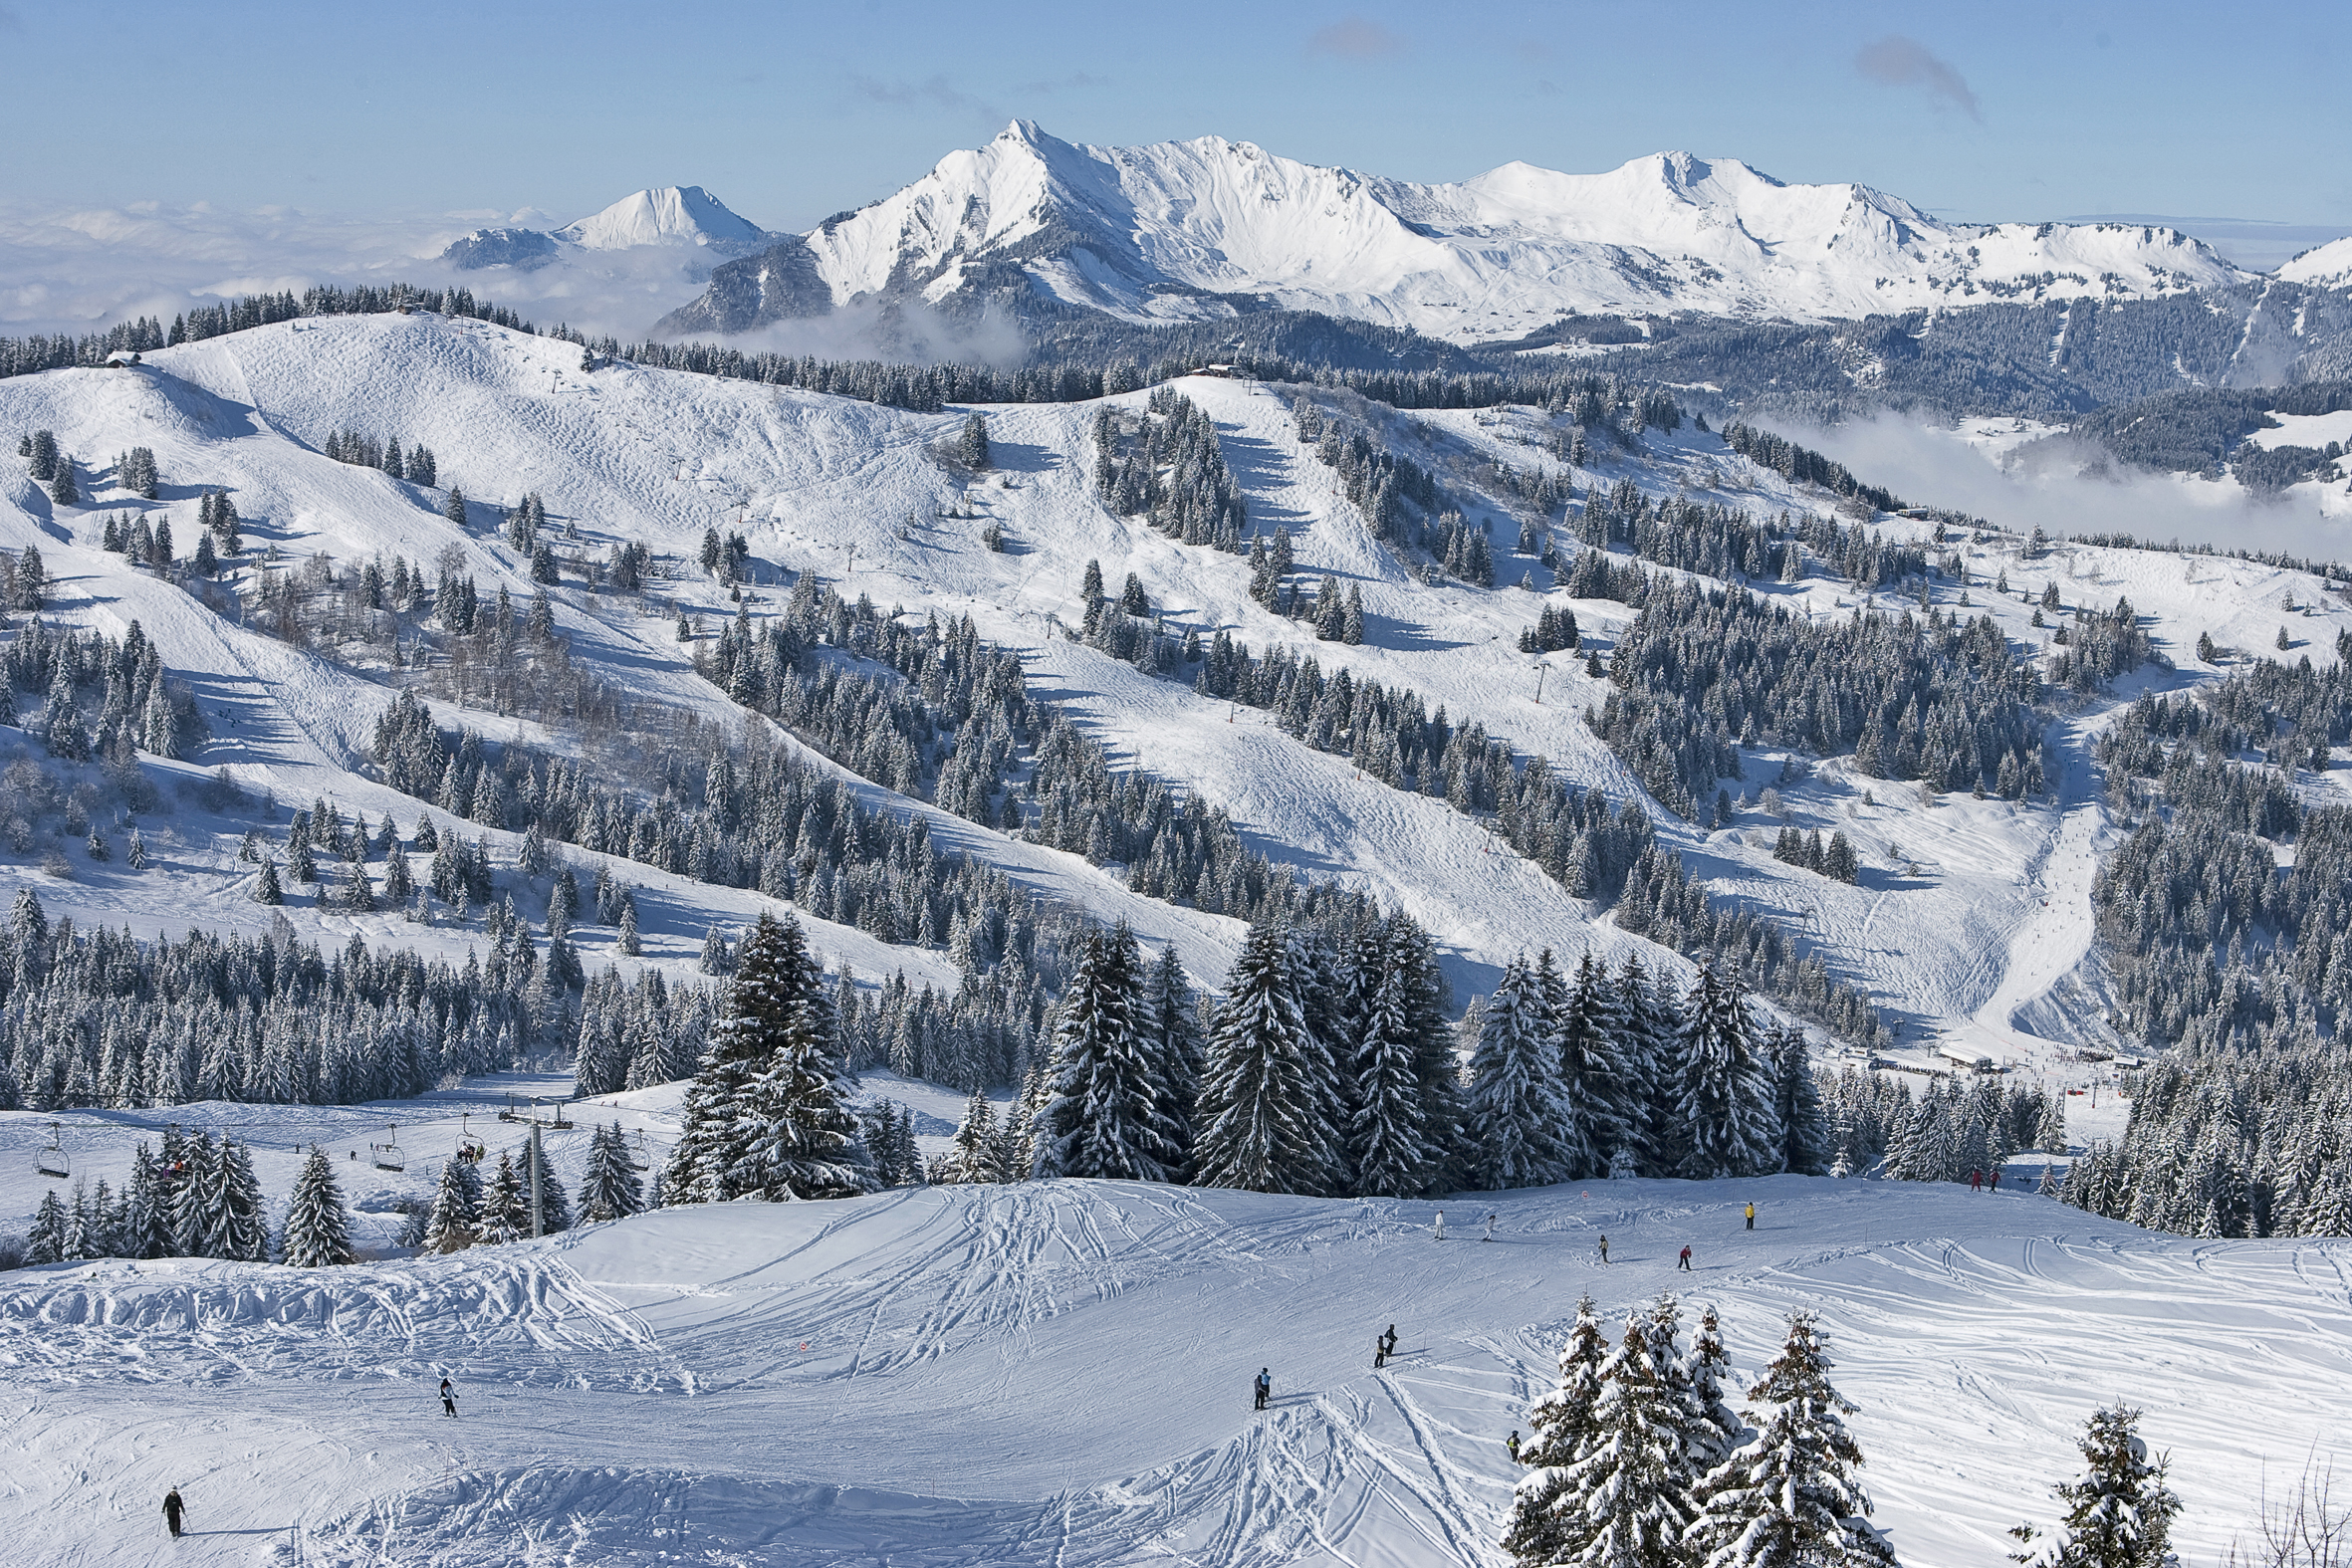 Les Gets ski area, French Alps